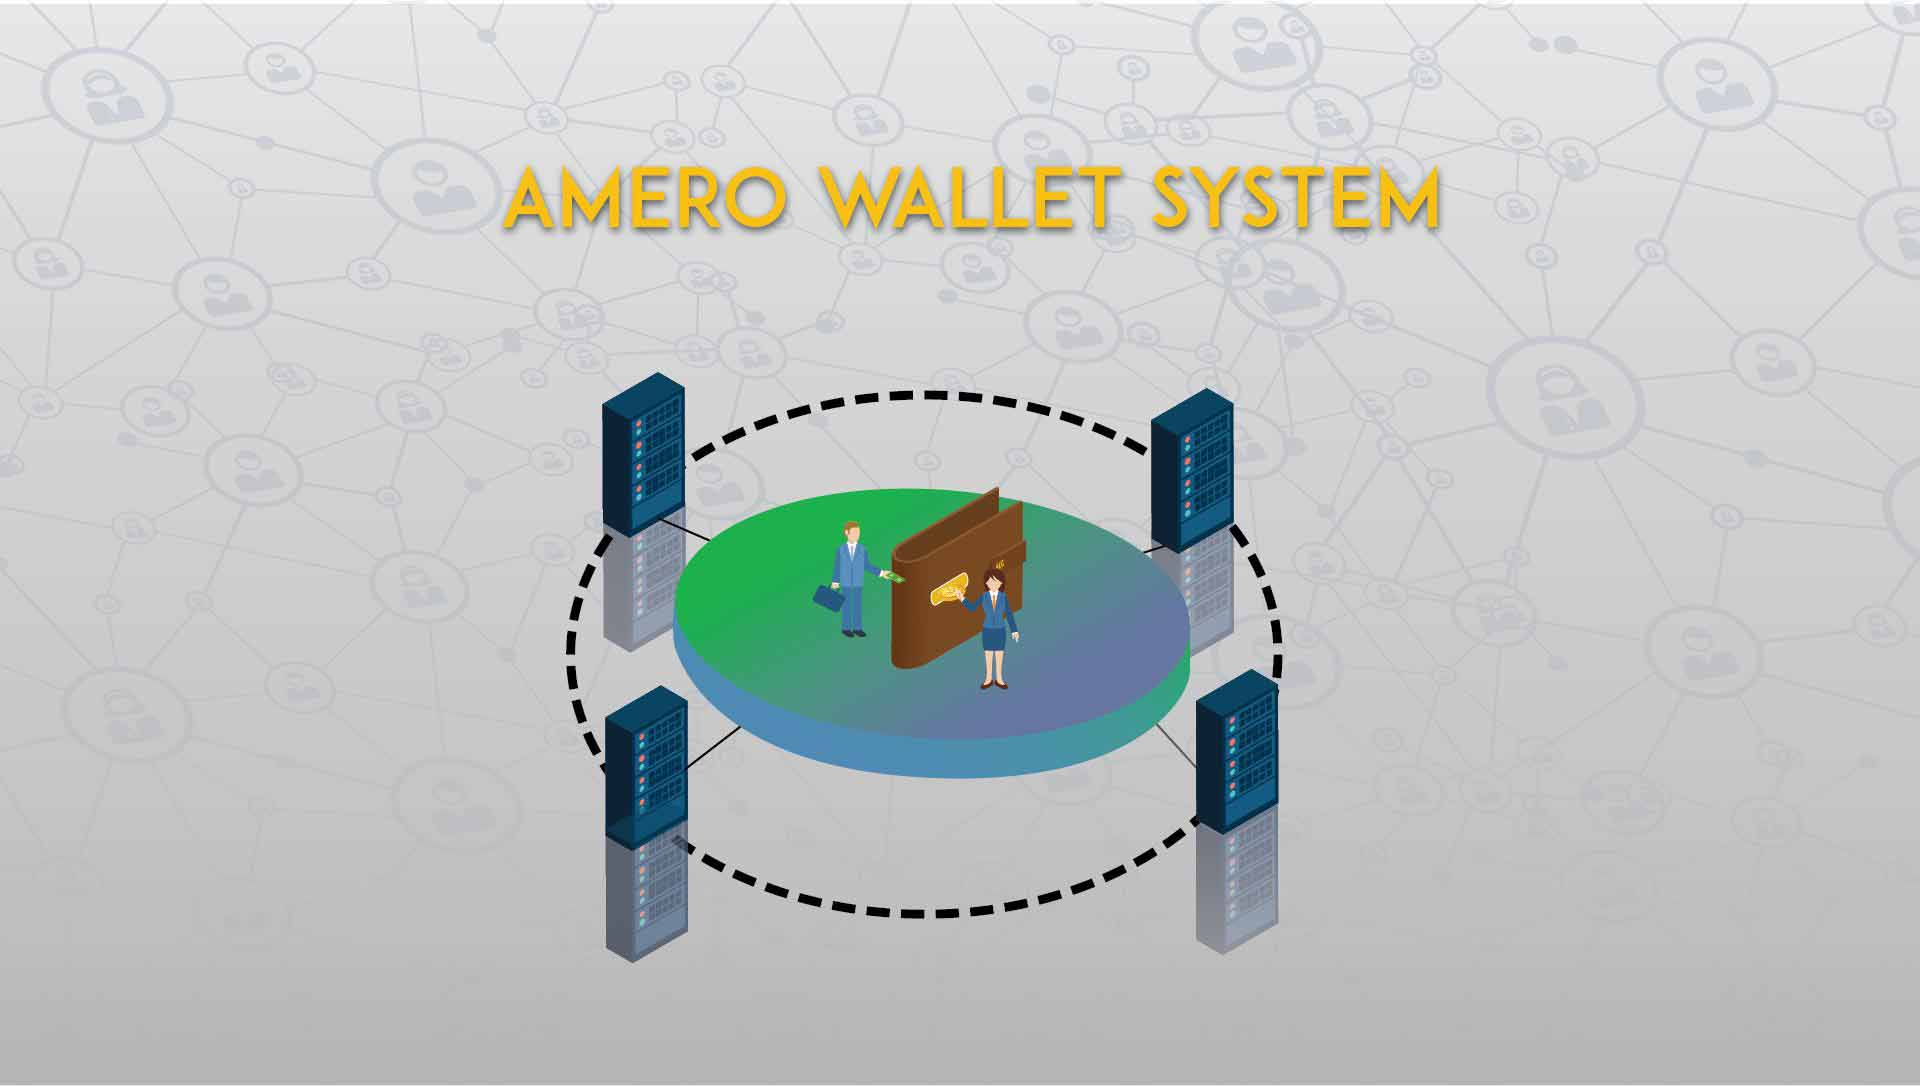 Amero Wallet System